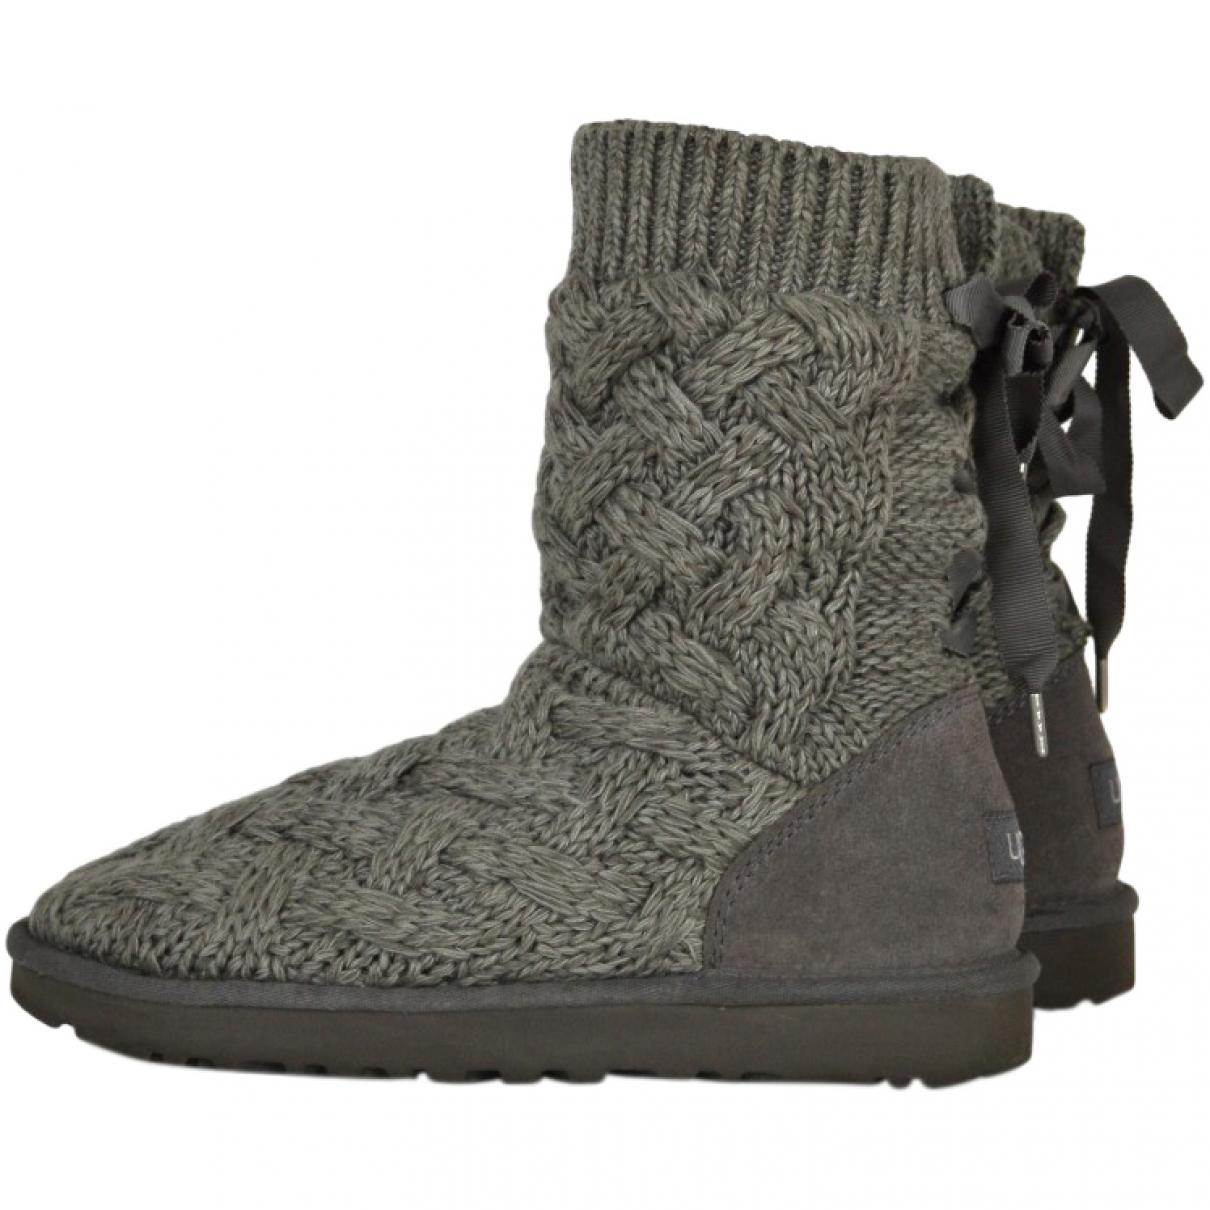 54ea85c524e UGG Cloth Boots in Gray - Lyst